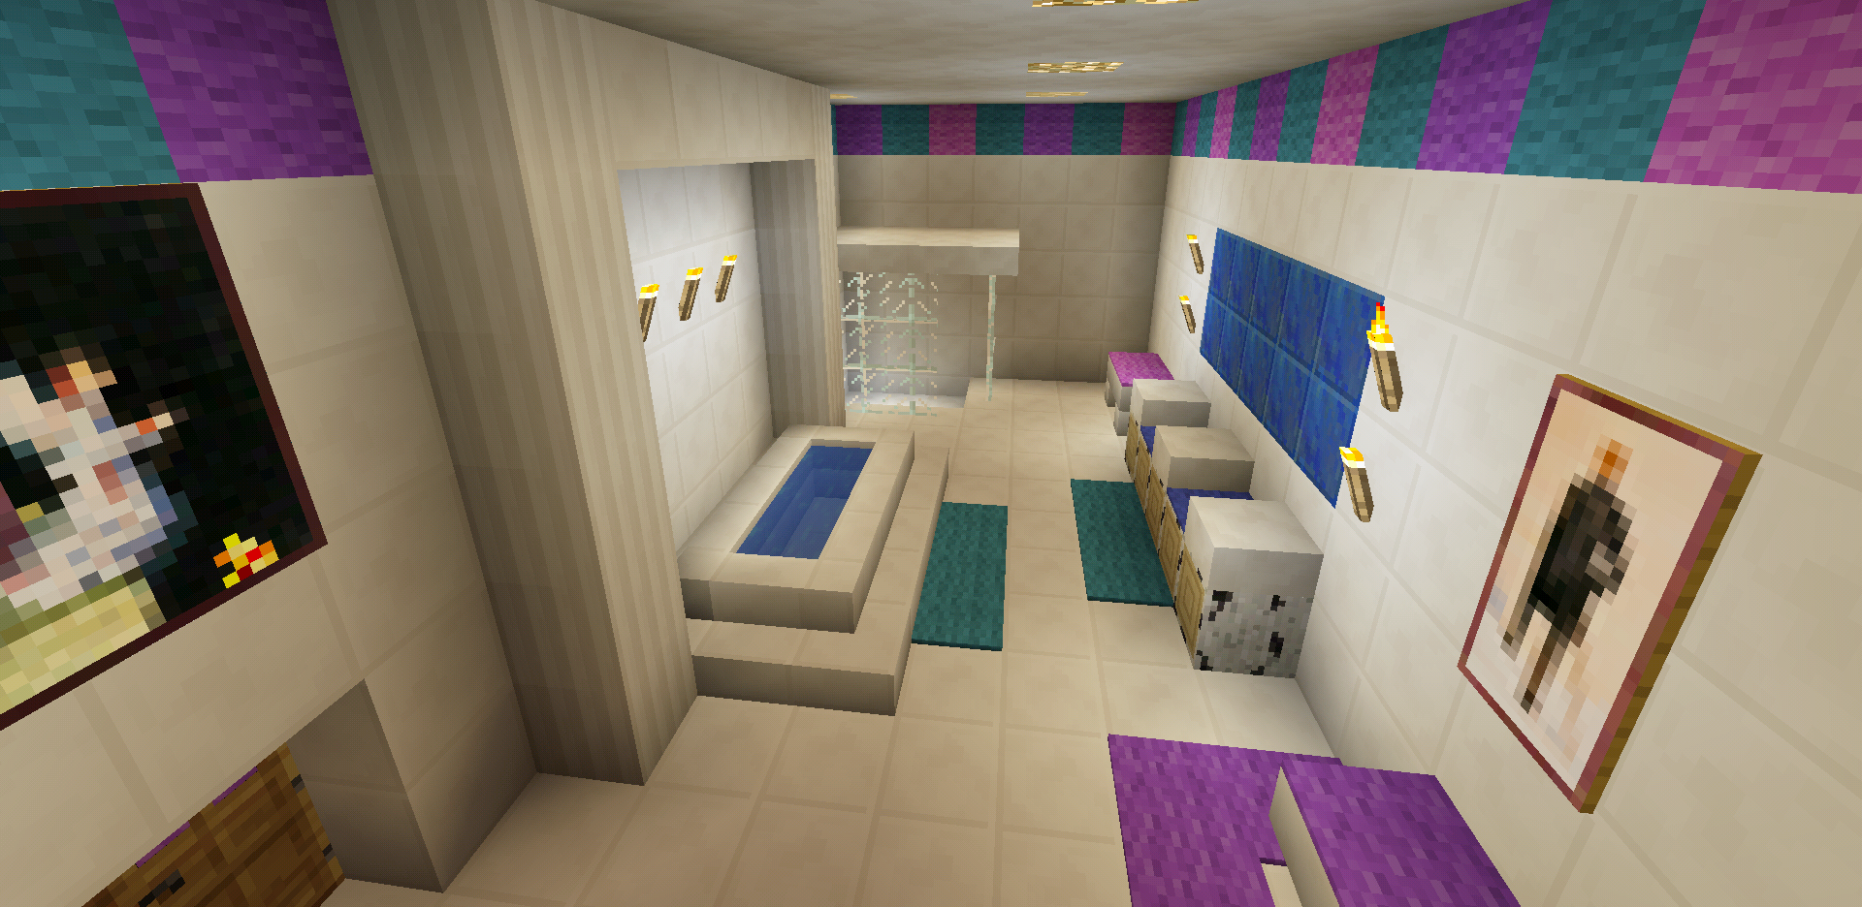 Minecraft Bathroom Pink Girl Wallpaper Wall Design Shower Sink ..